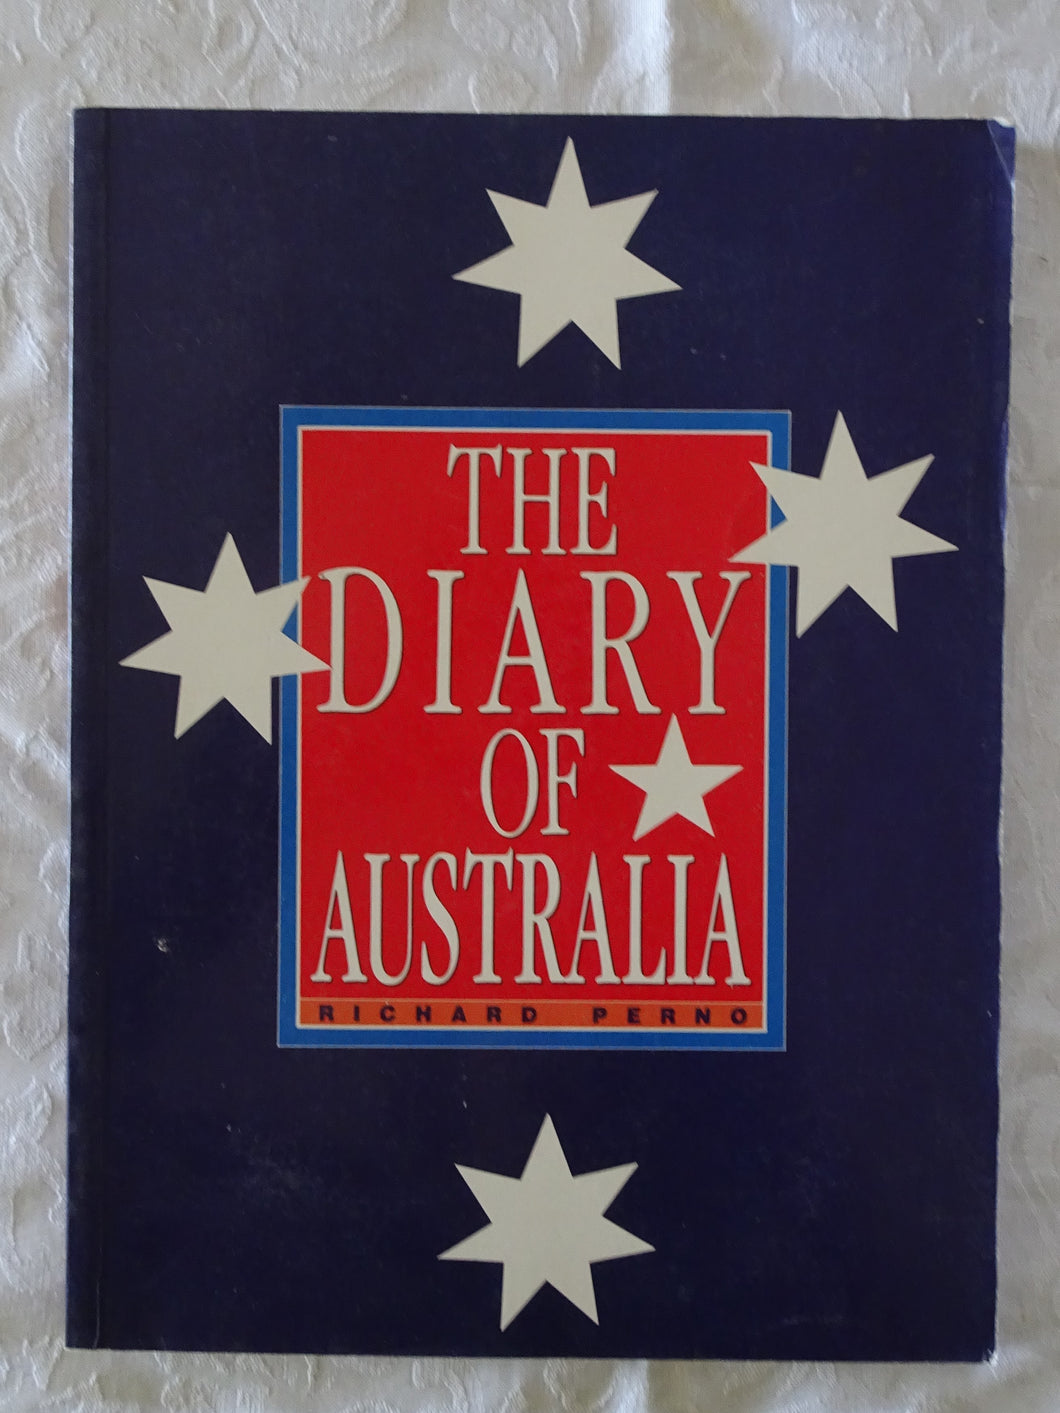 The Diary of Australia by Richard Perno